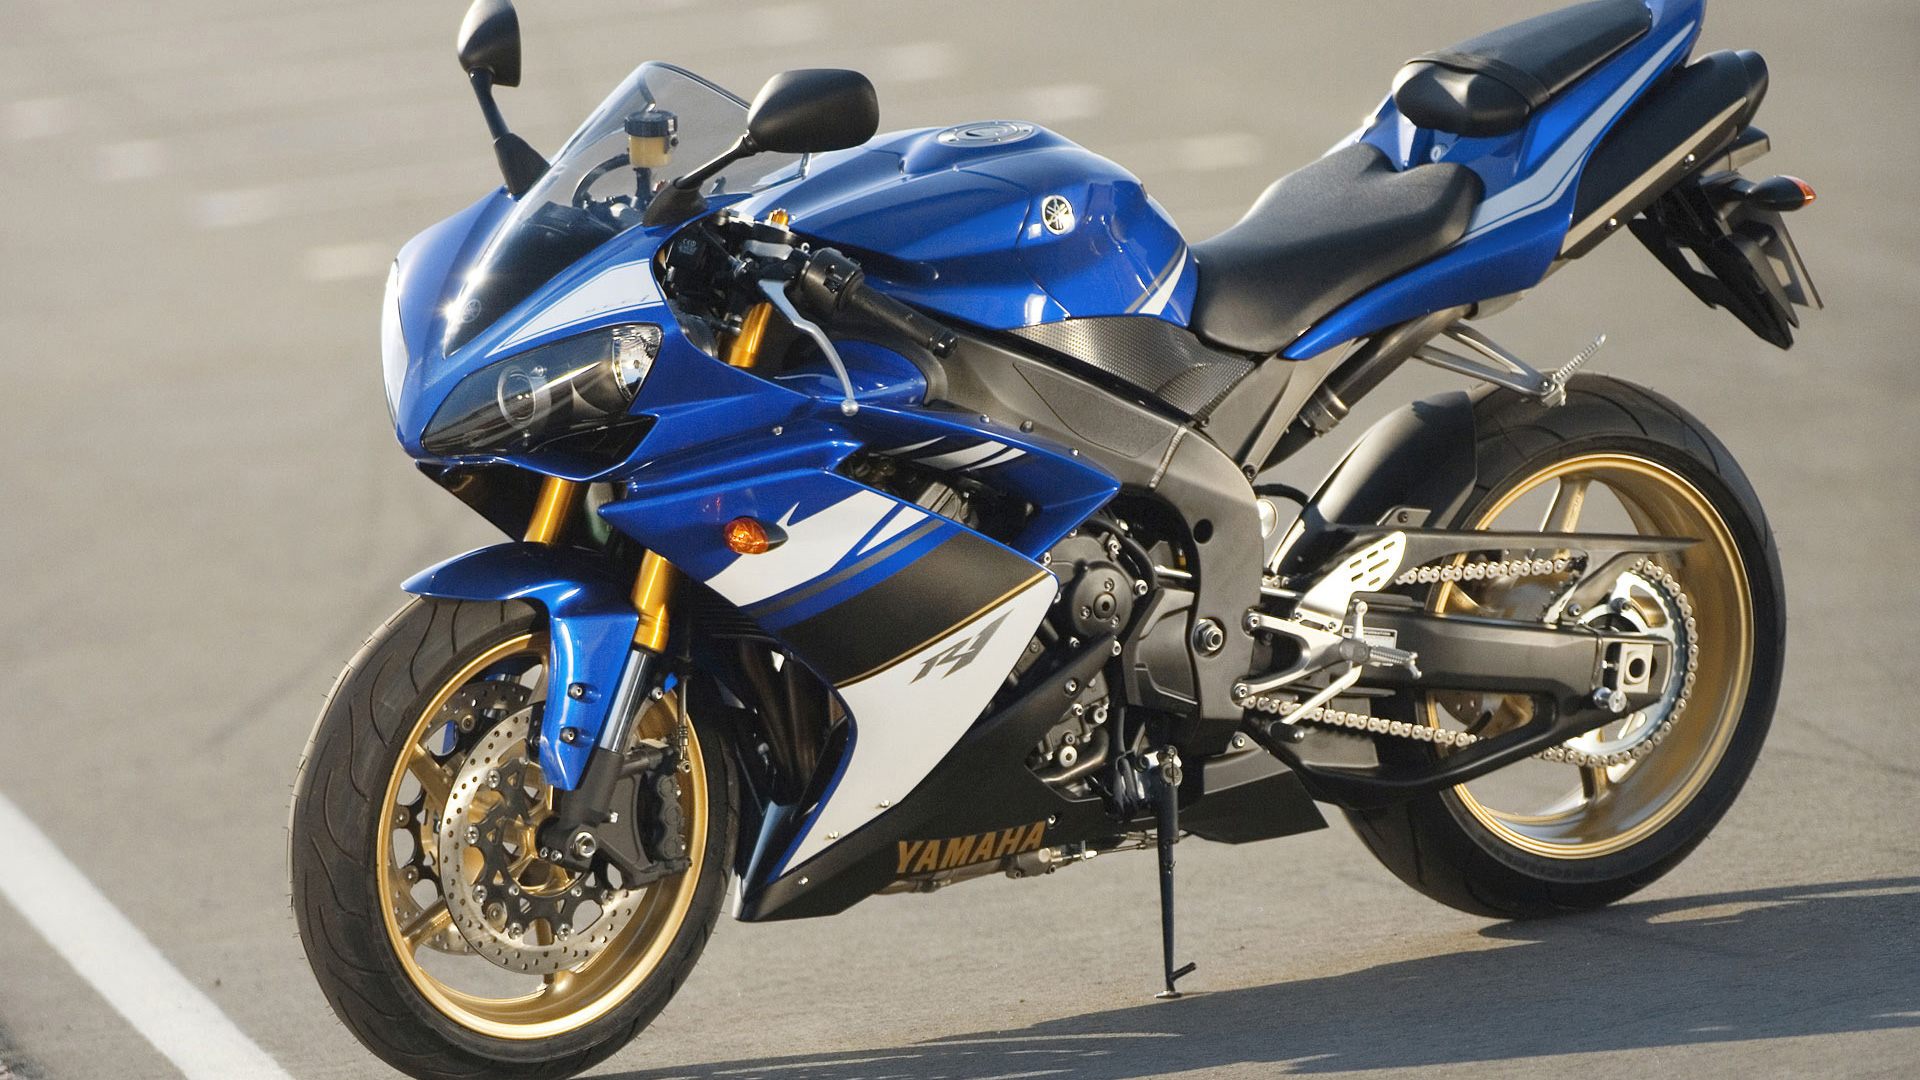 yamaha r1 blue bike - photo #5